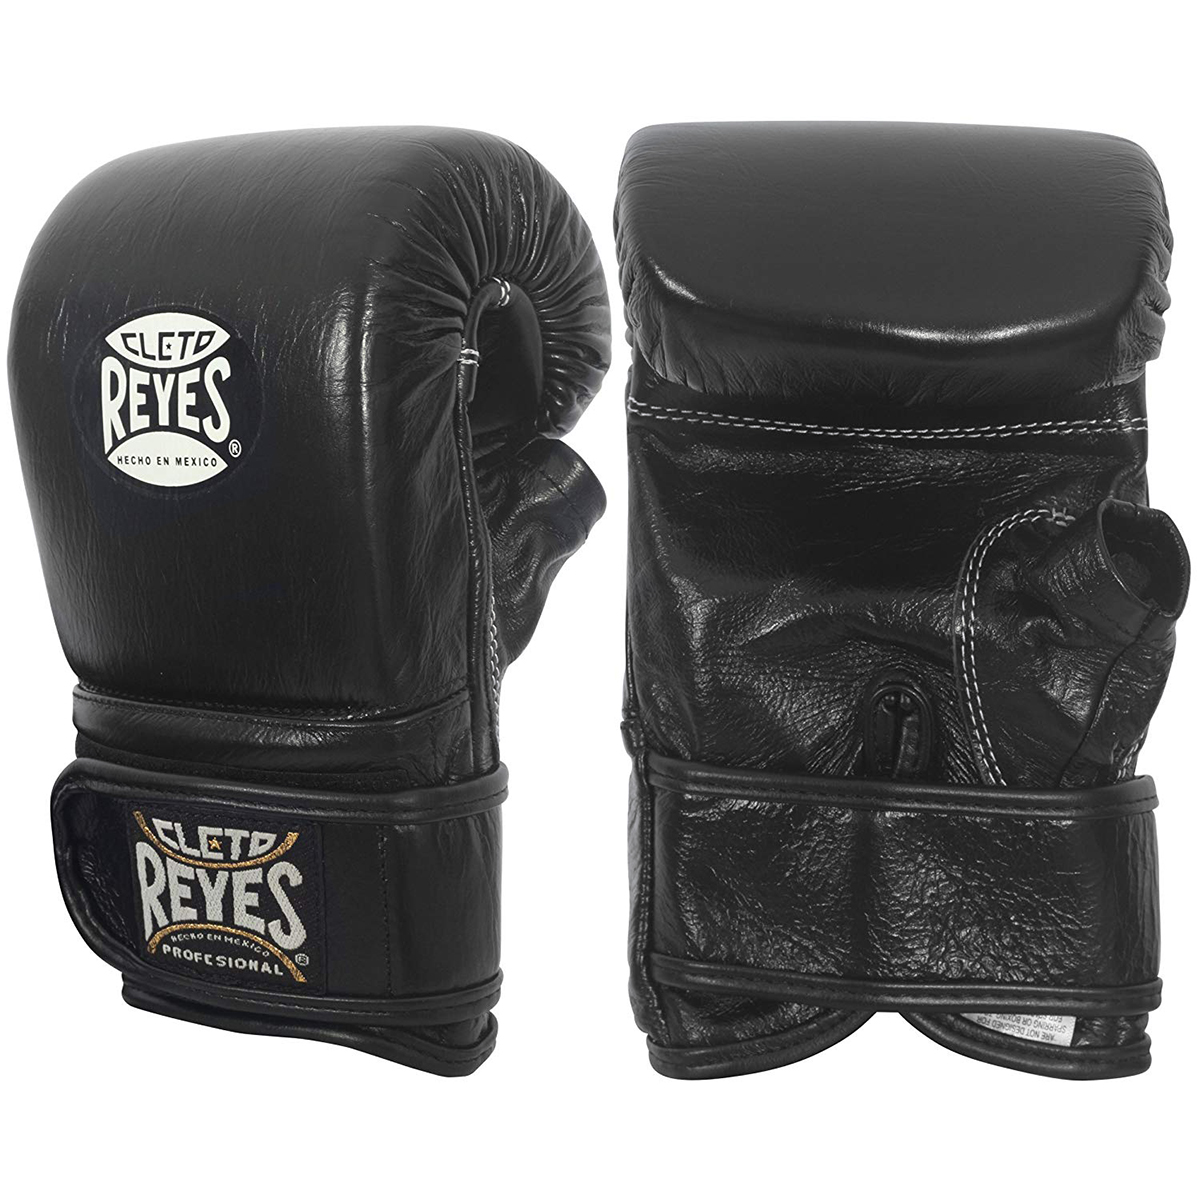 Black Cleto Reyes Hook and Loop Leather Boxing Bag Gloves